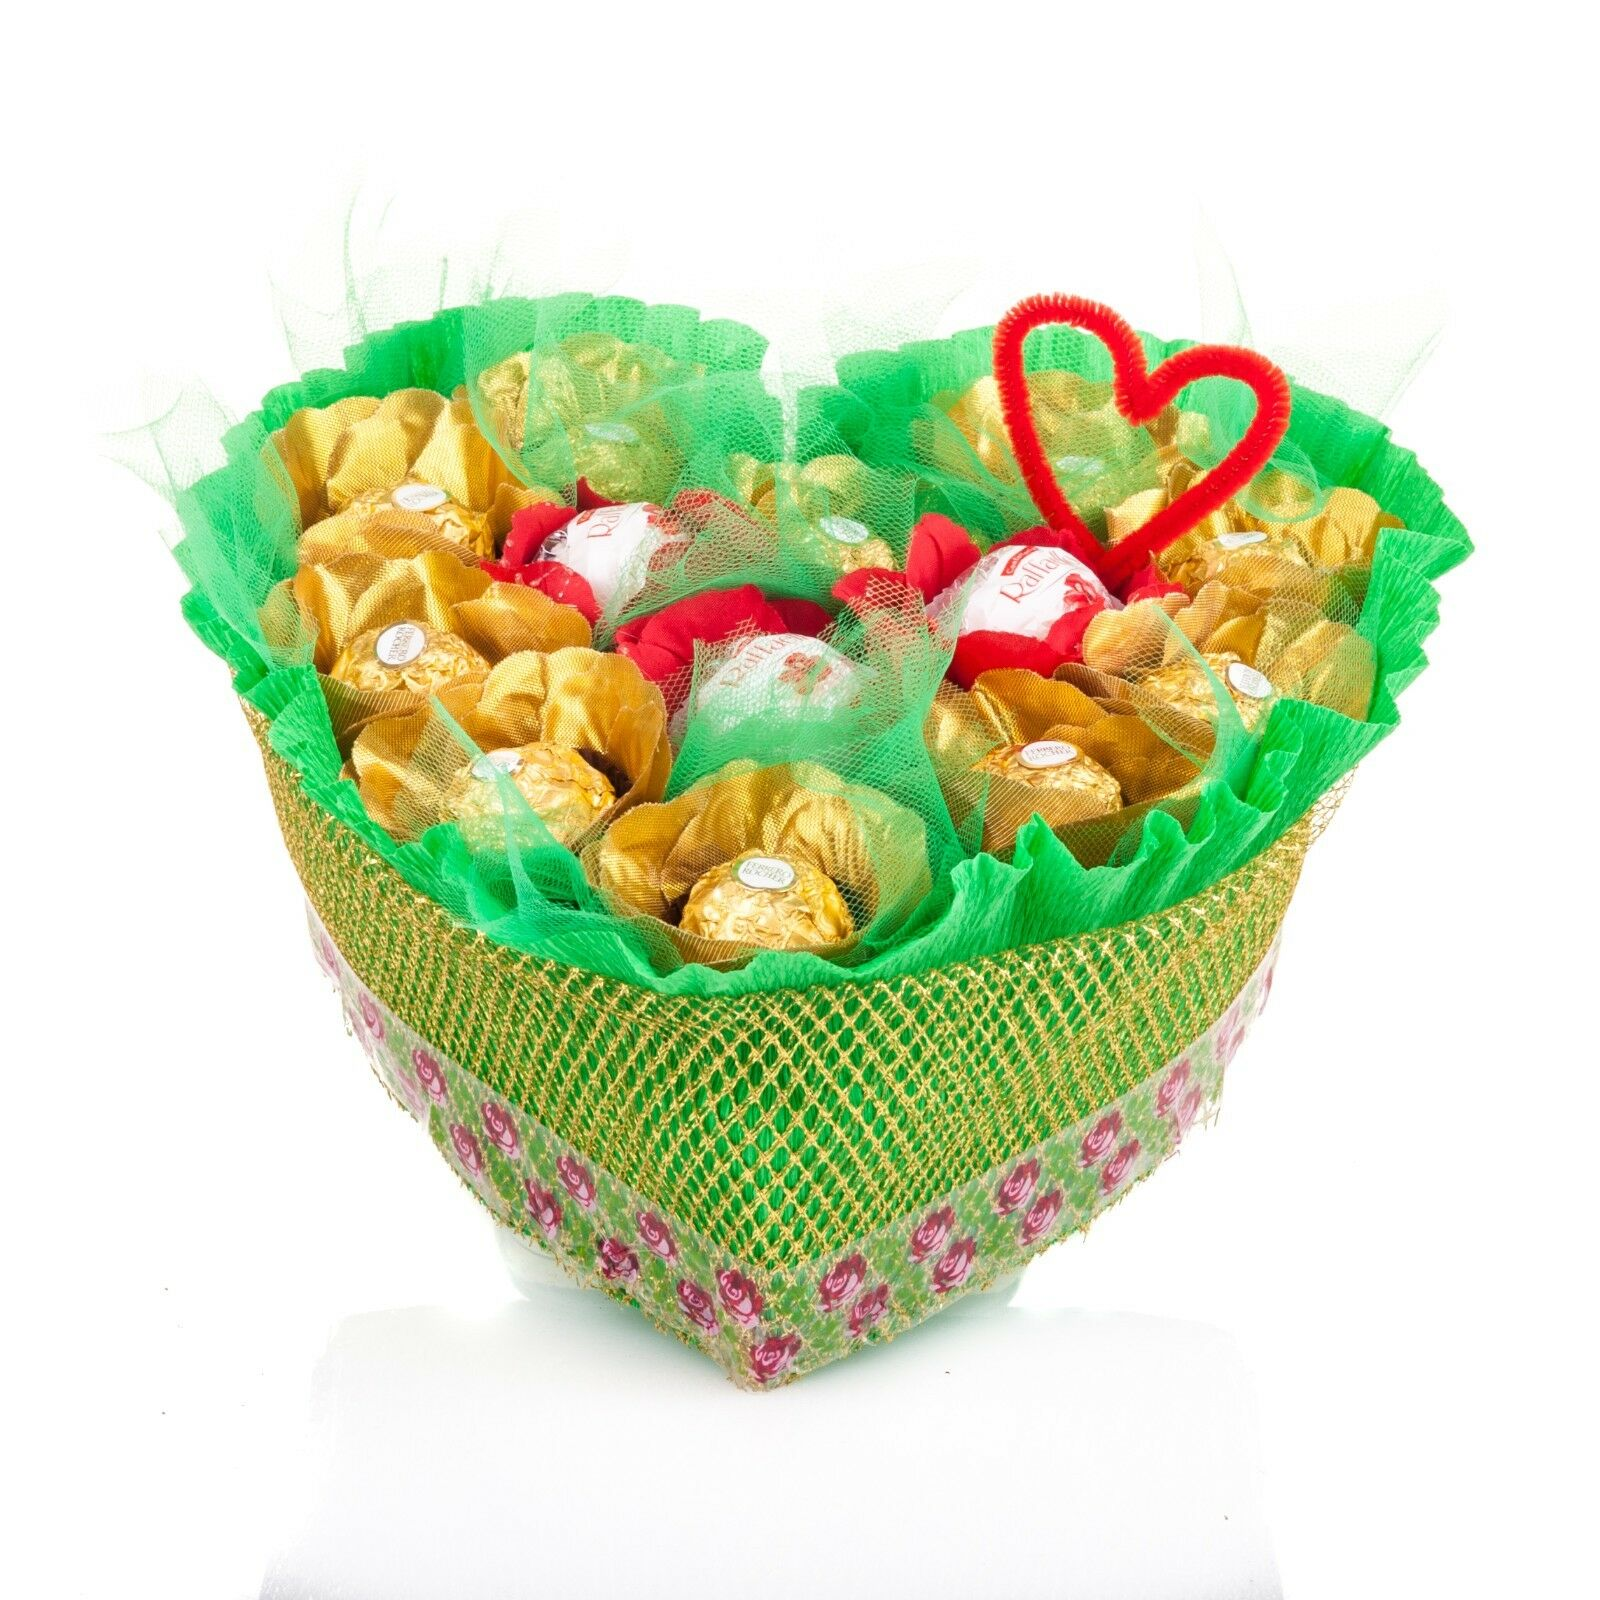 Chocolate bouquet heart gift gold roses ferrero rocherraffaelo chocolate bouquet heart gift gold roses ferrero rocherraffaelo izmirmasajfo